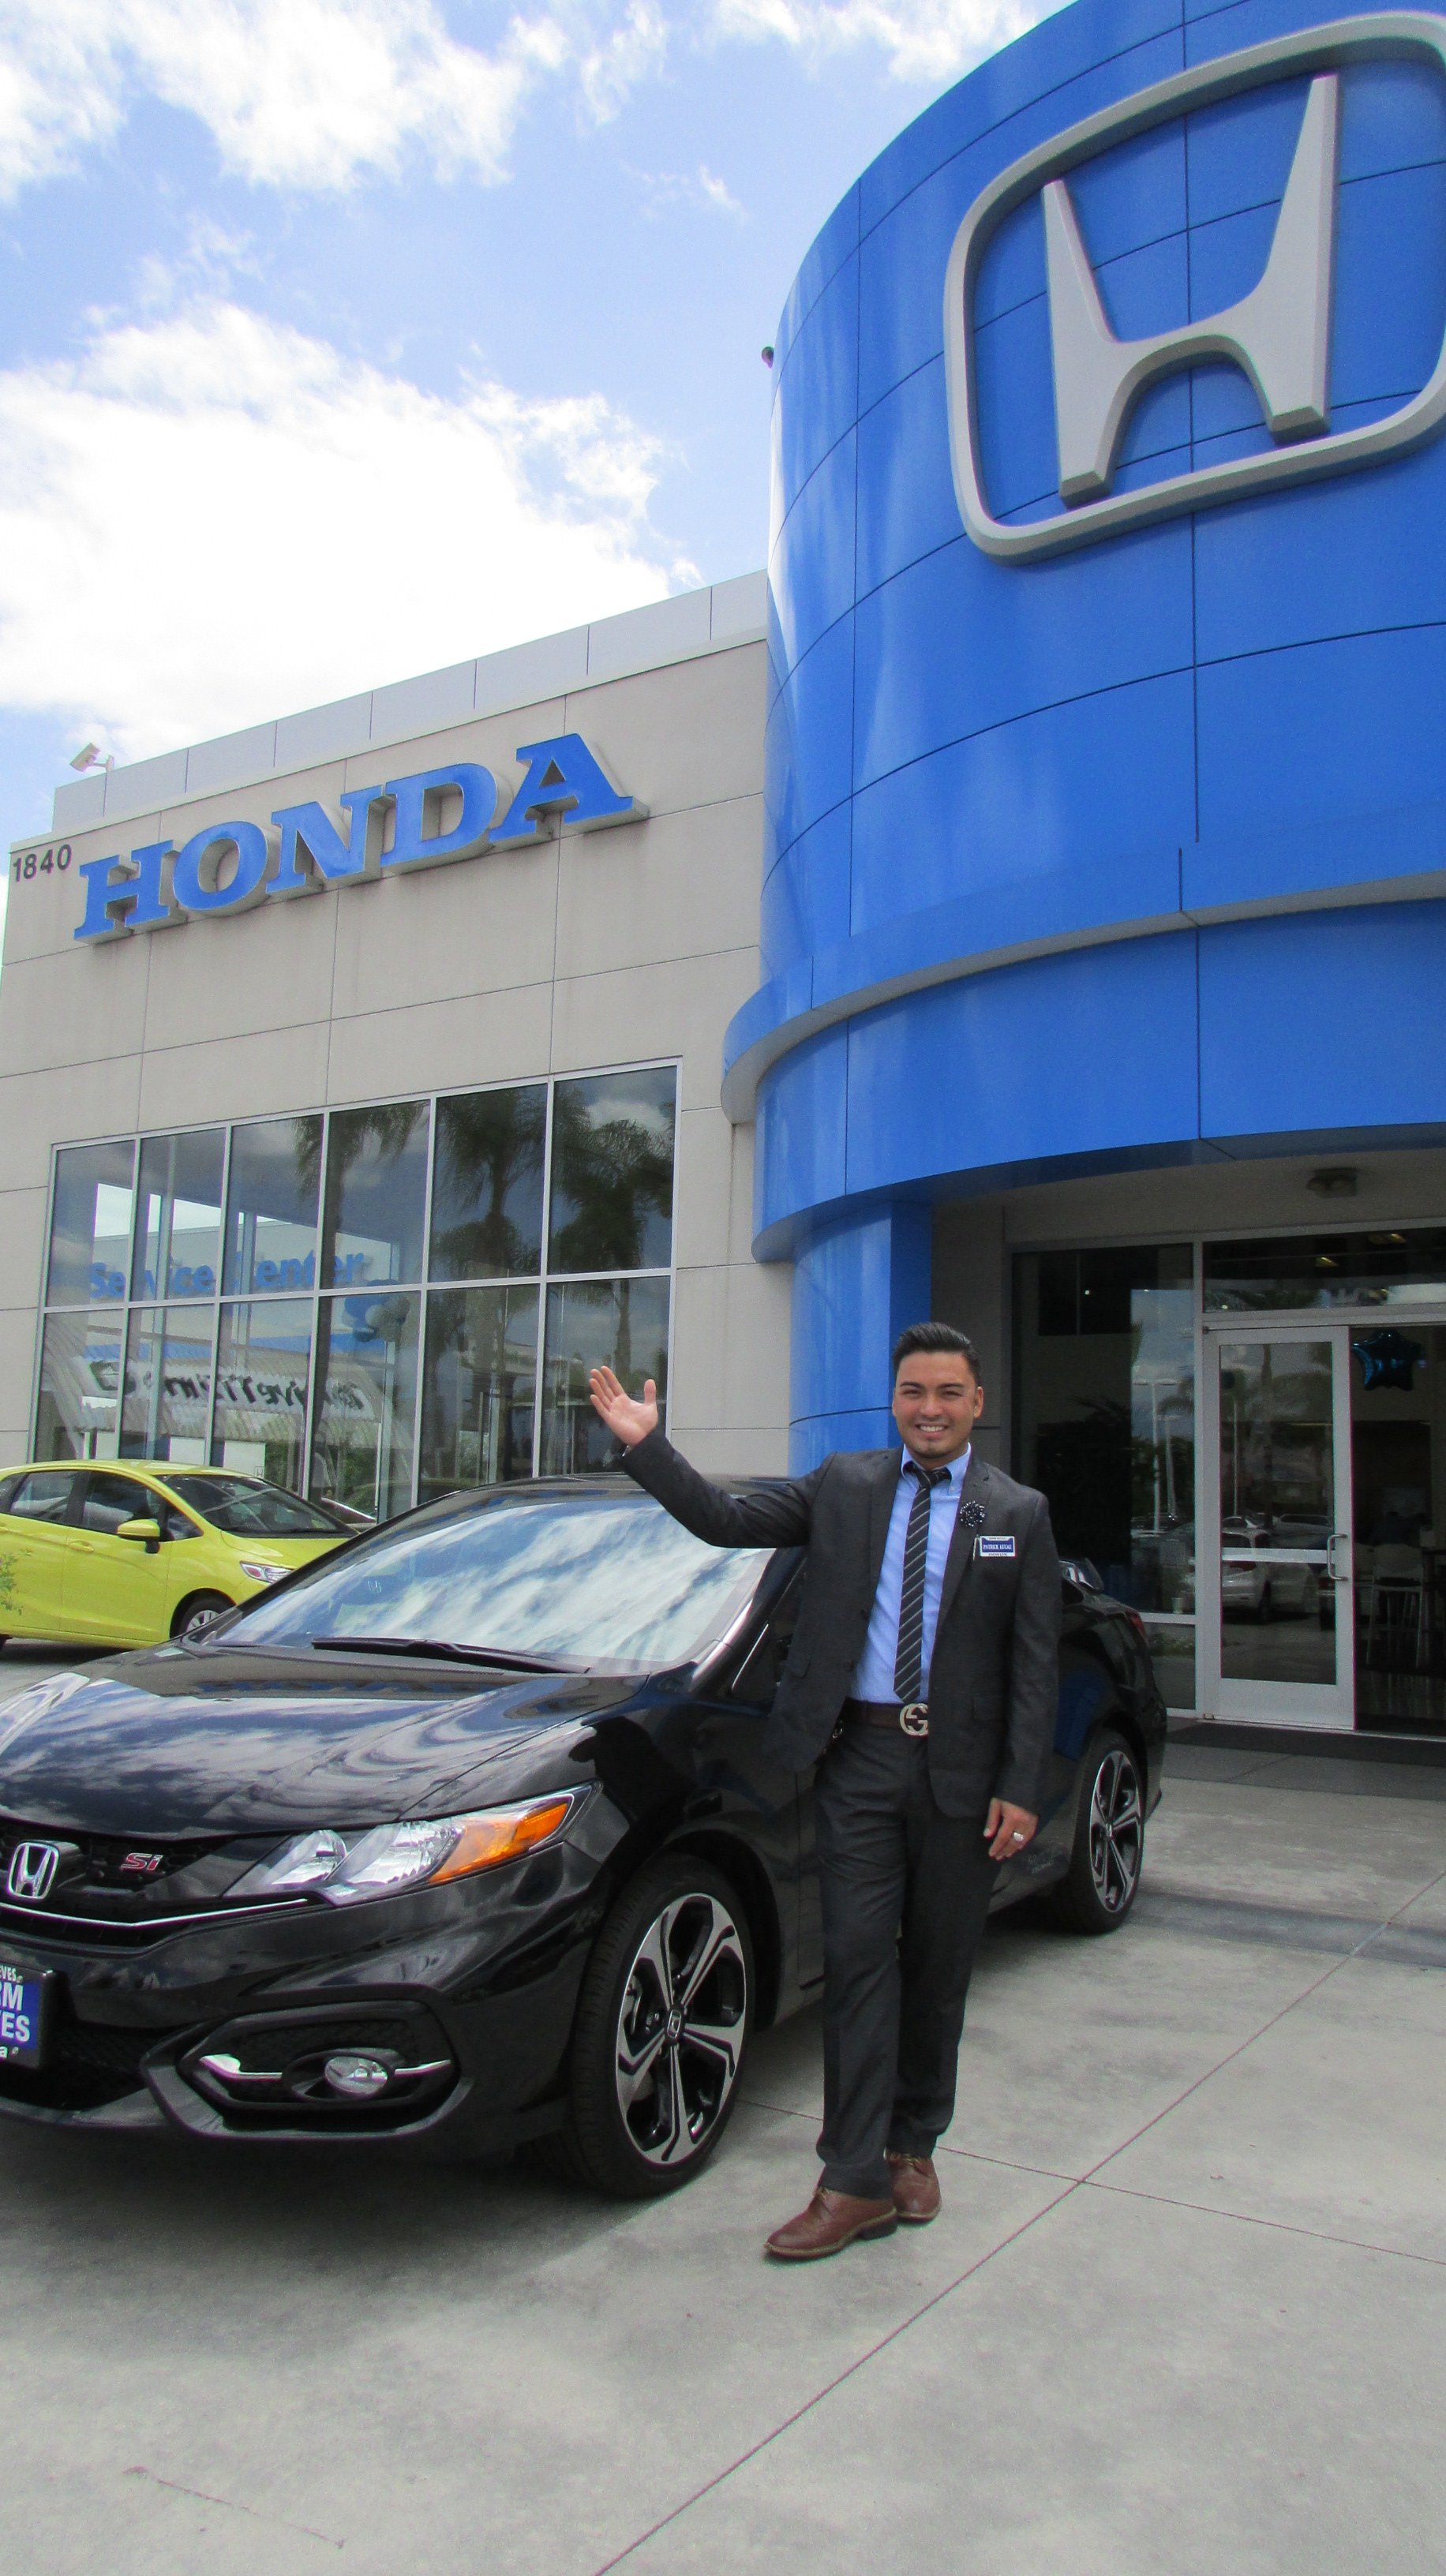 Find Out Why Honda Is The Worldu0027s Top Brand, Get In Touch With Patrick Lucas